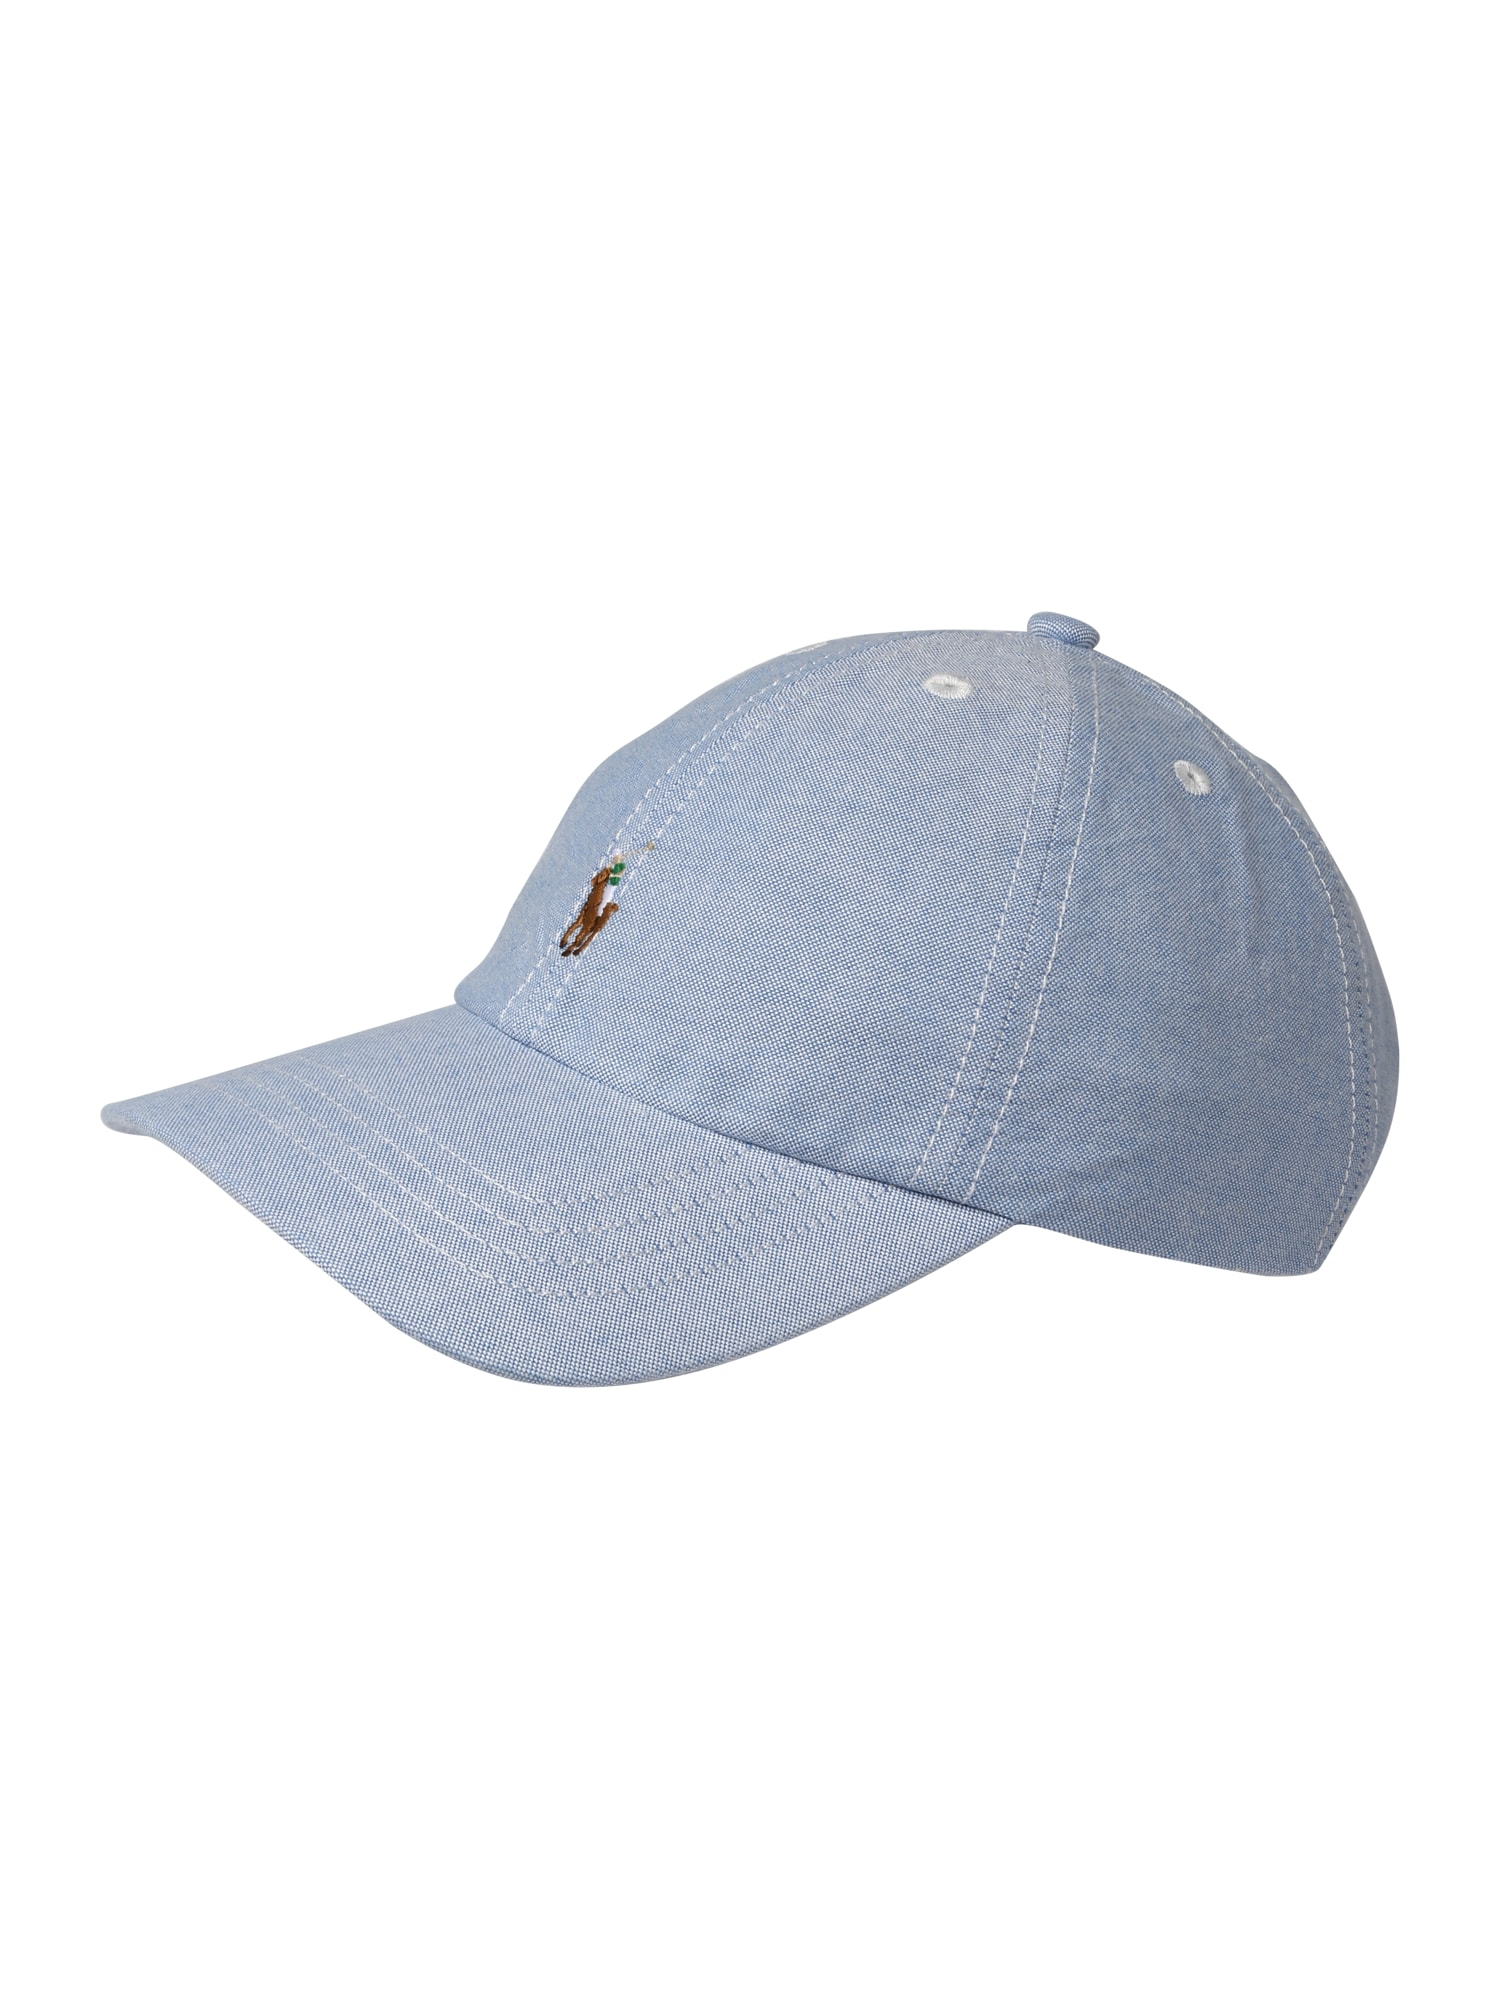 Klobouk OXFORD-SMALL PP CAP-AC-HAT modrá POLO RALPH LAUREN